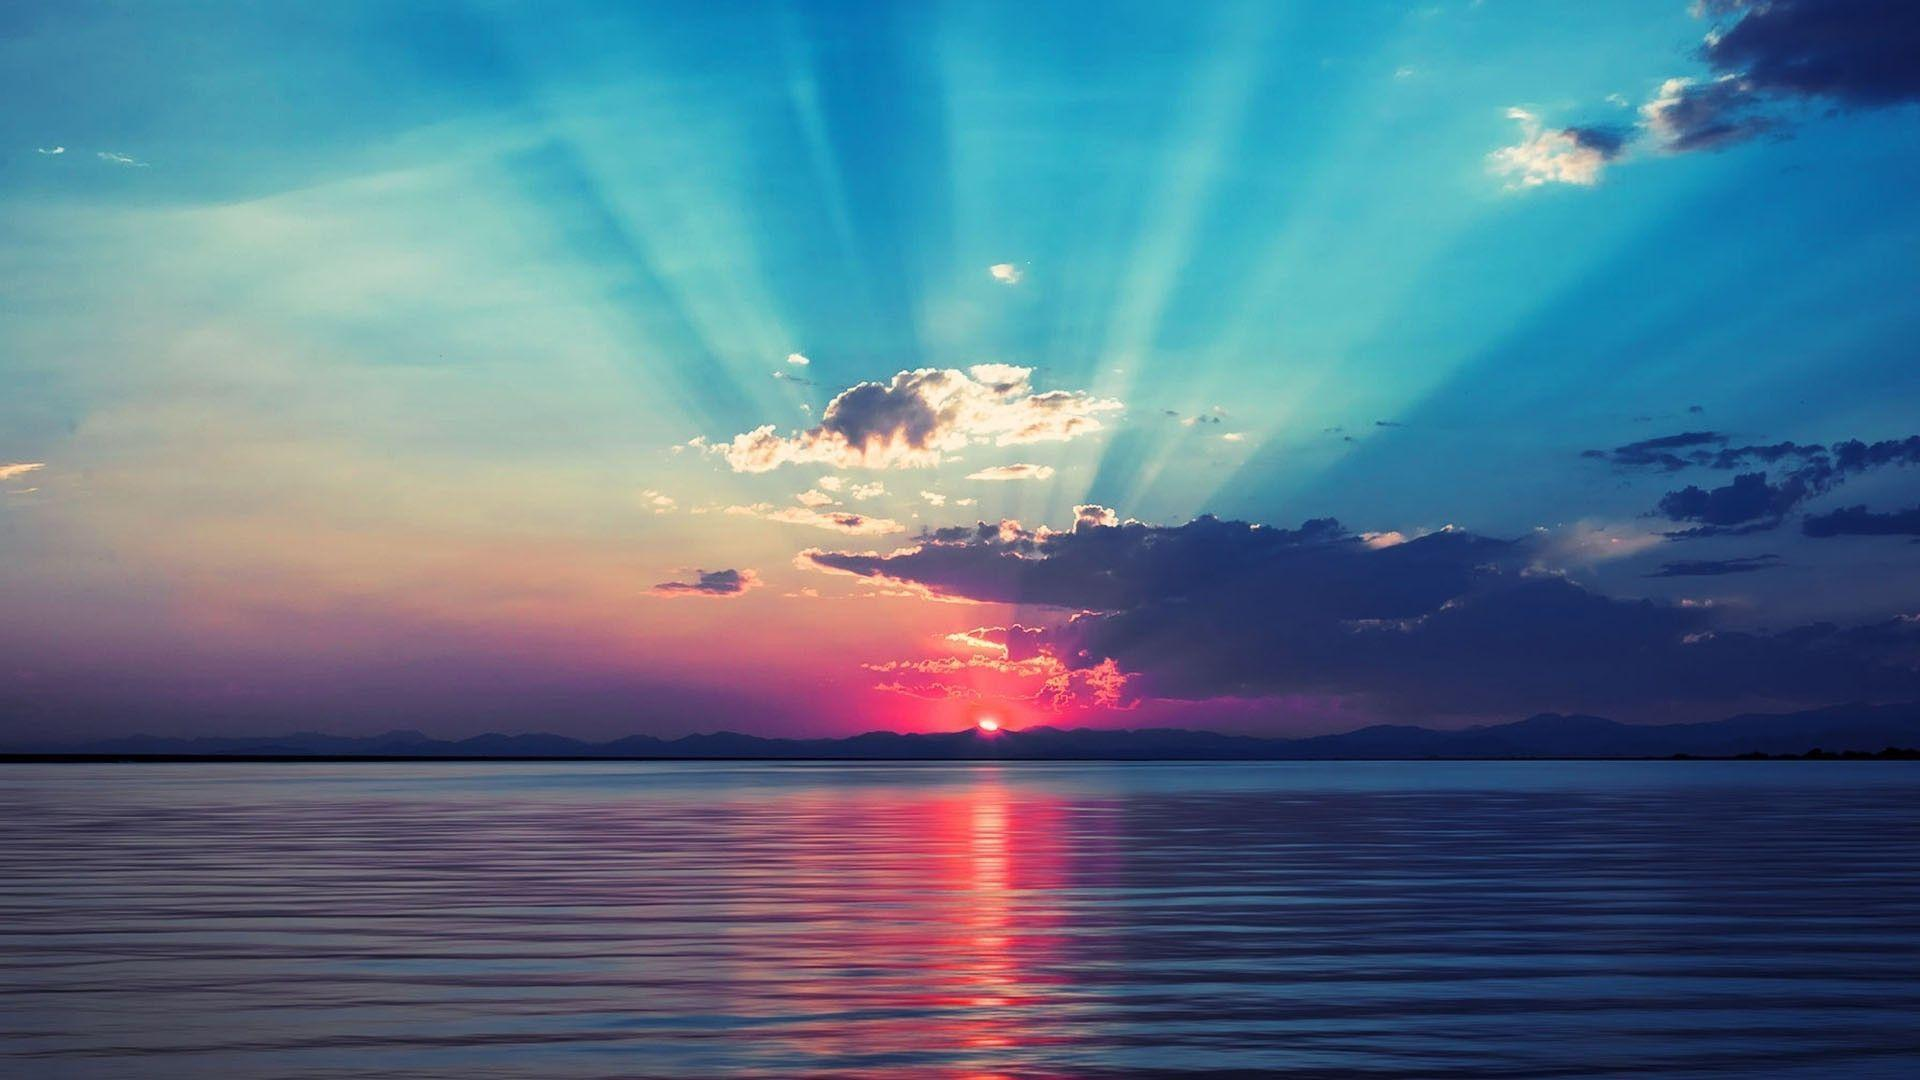 Sunrise Sky Wallpaper Hd Widescreen 11 HD Wallpapers | Eakai.